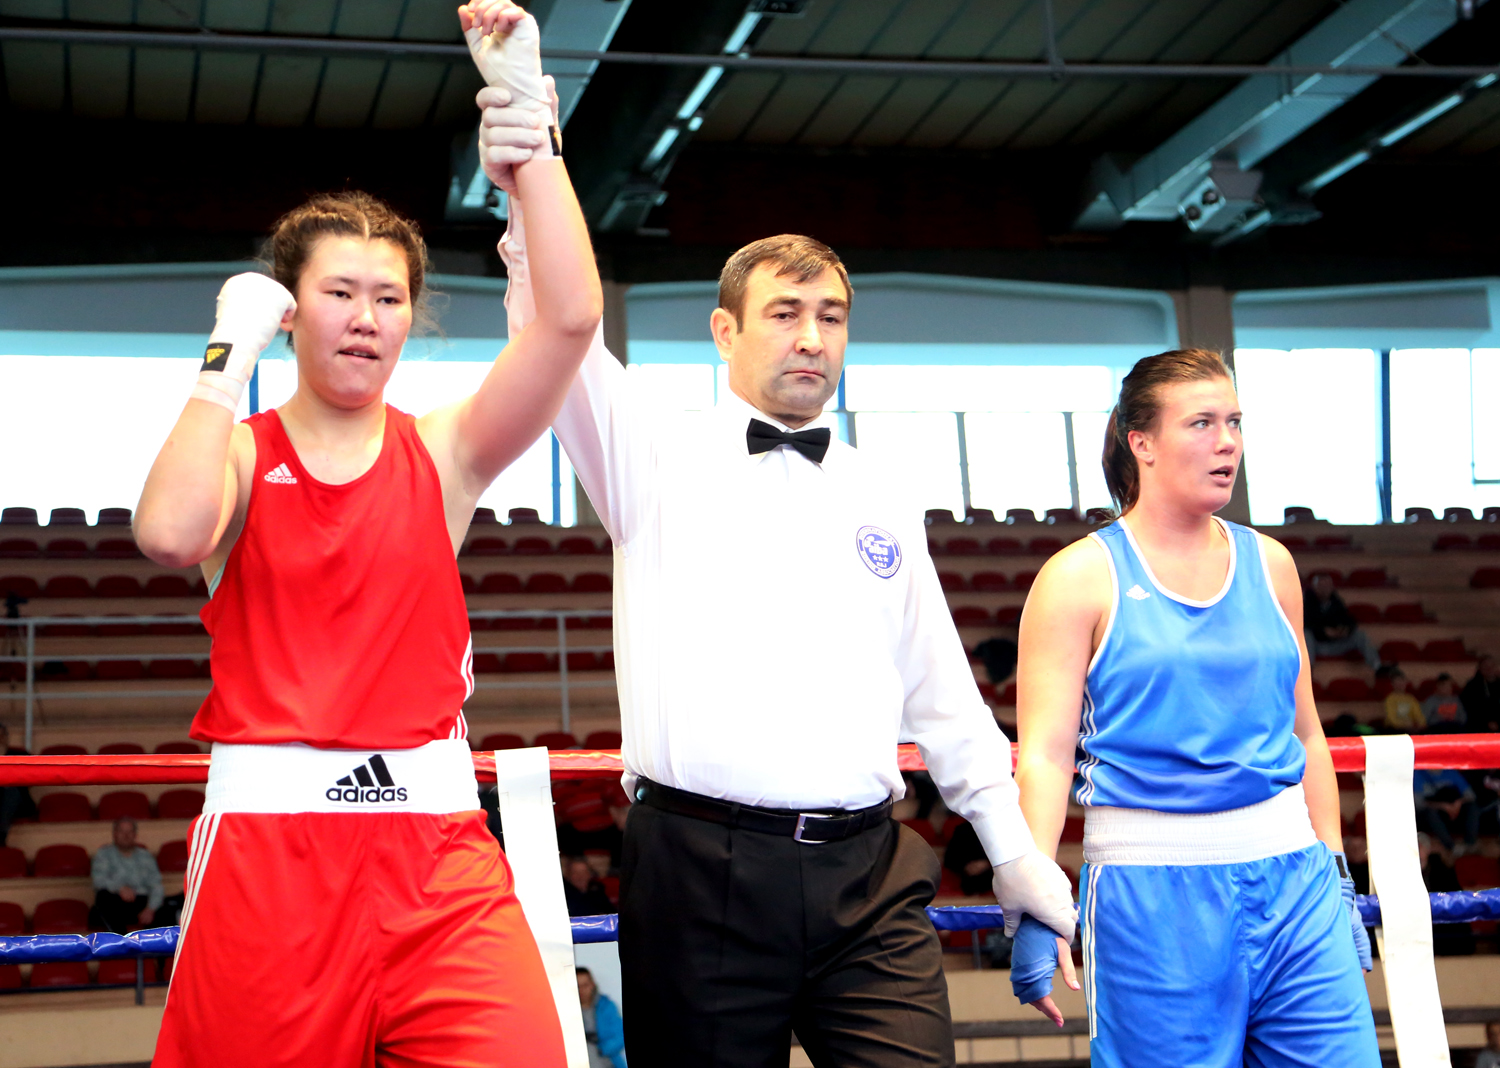 Seven gold medals won girls boxers at the Nations Cup